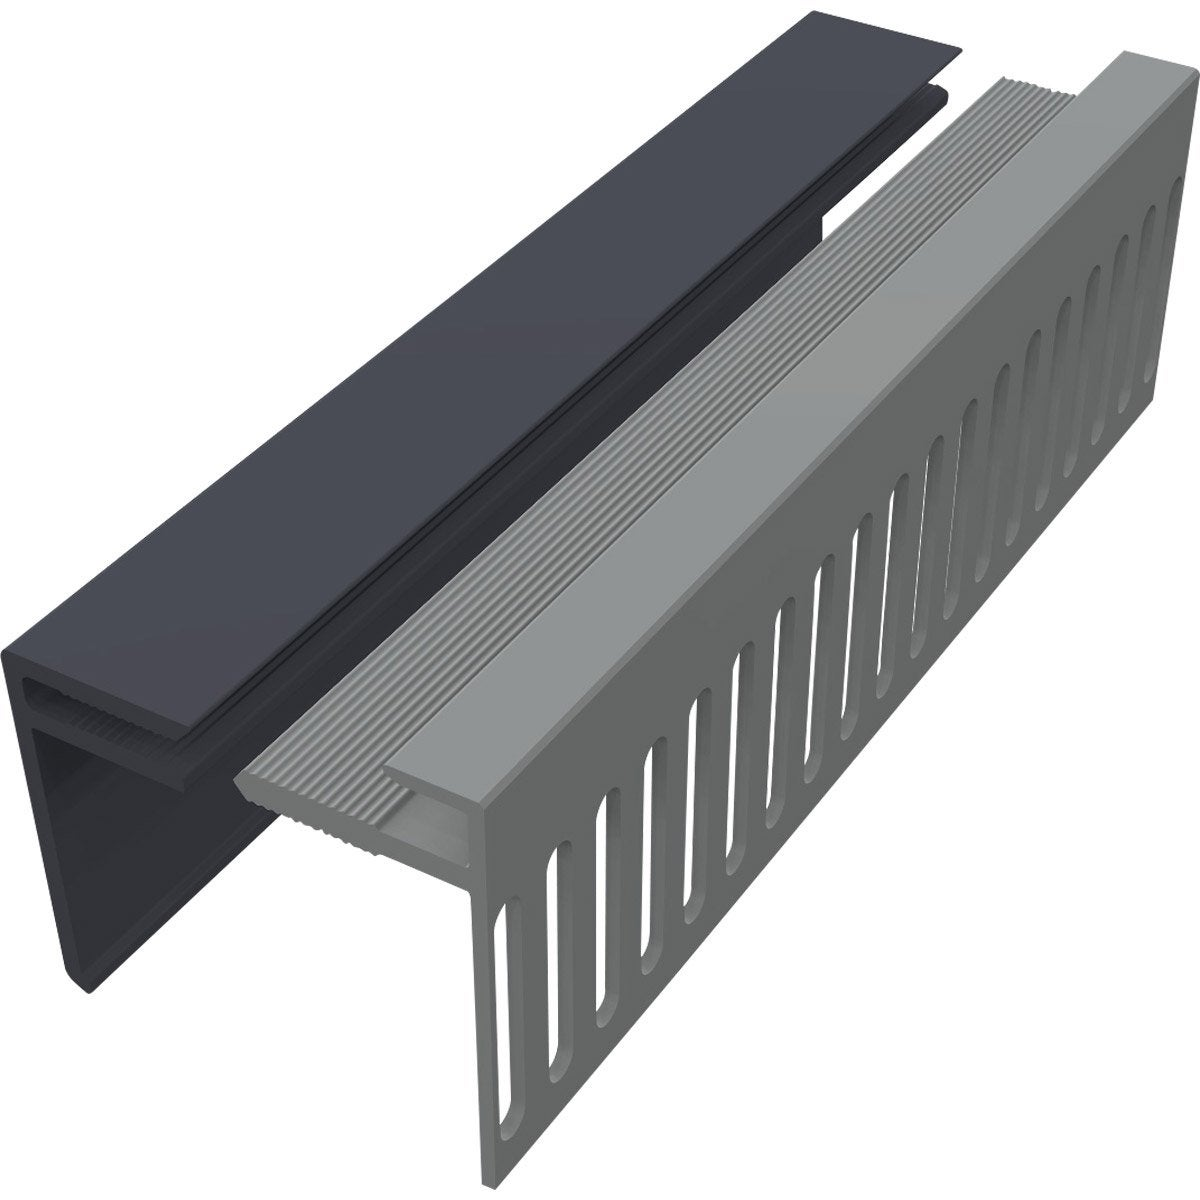 Awesome profil de dpart pvc freefoam solid gris anthracite for Pica lavabo leroy merlin